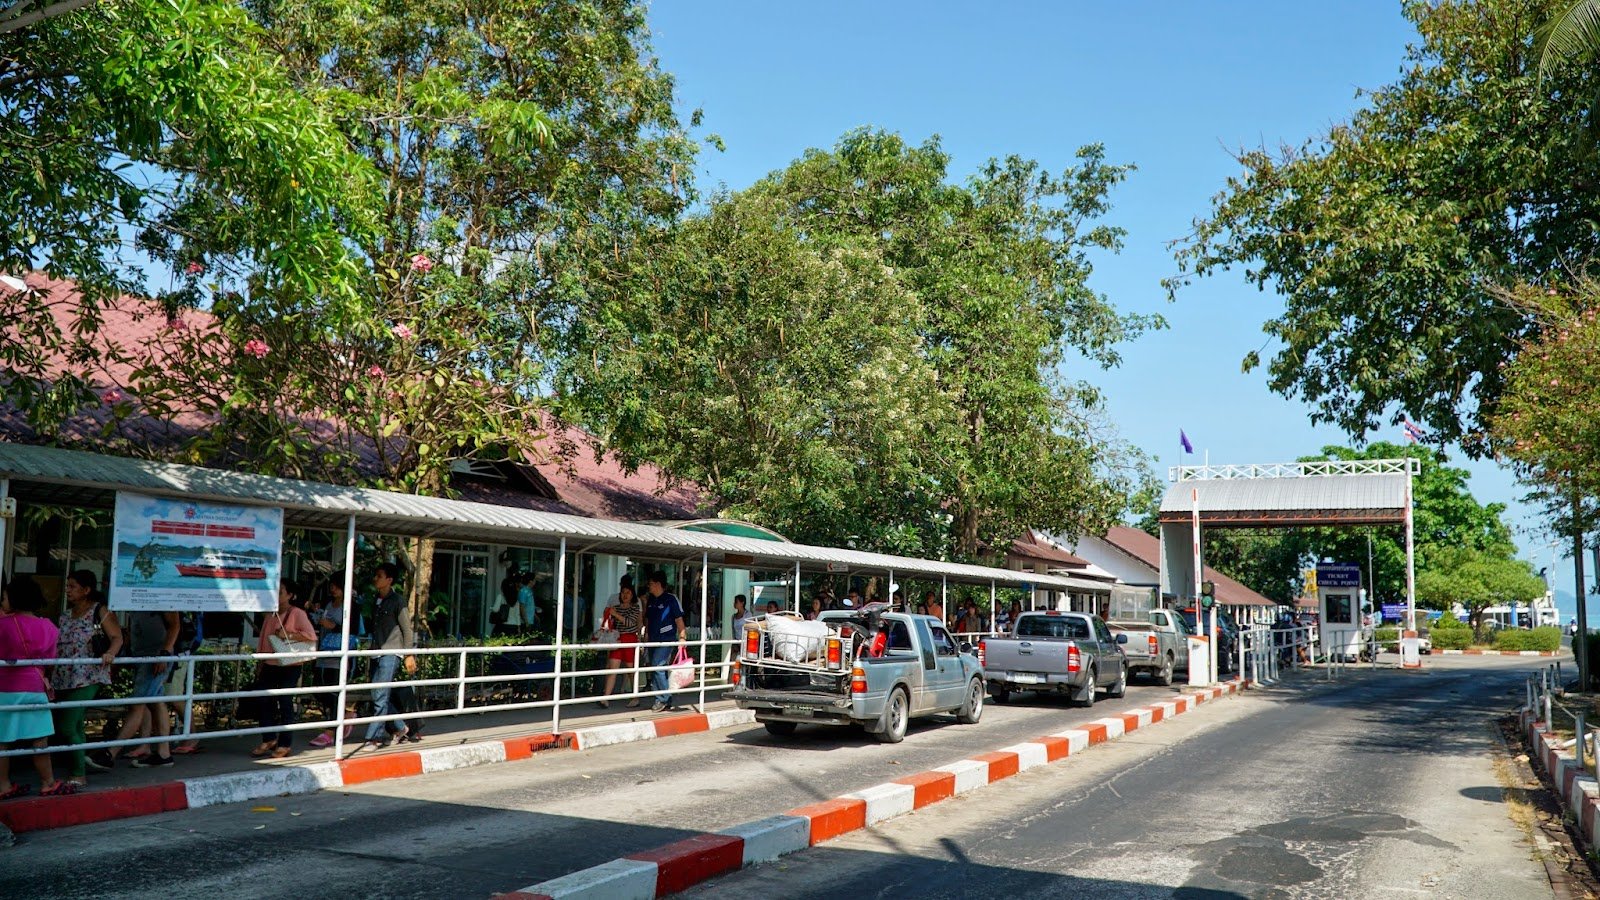 At Donsak pier, waiting for our bus to exit the ferry